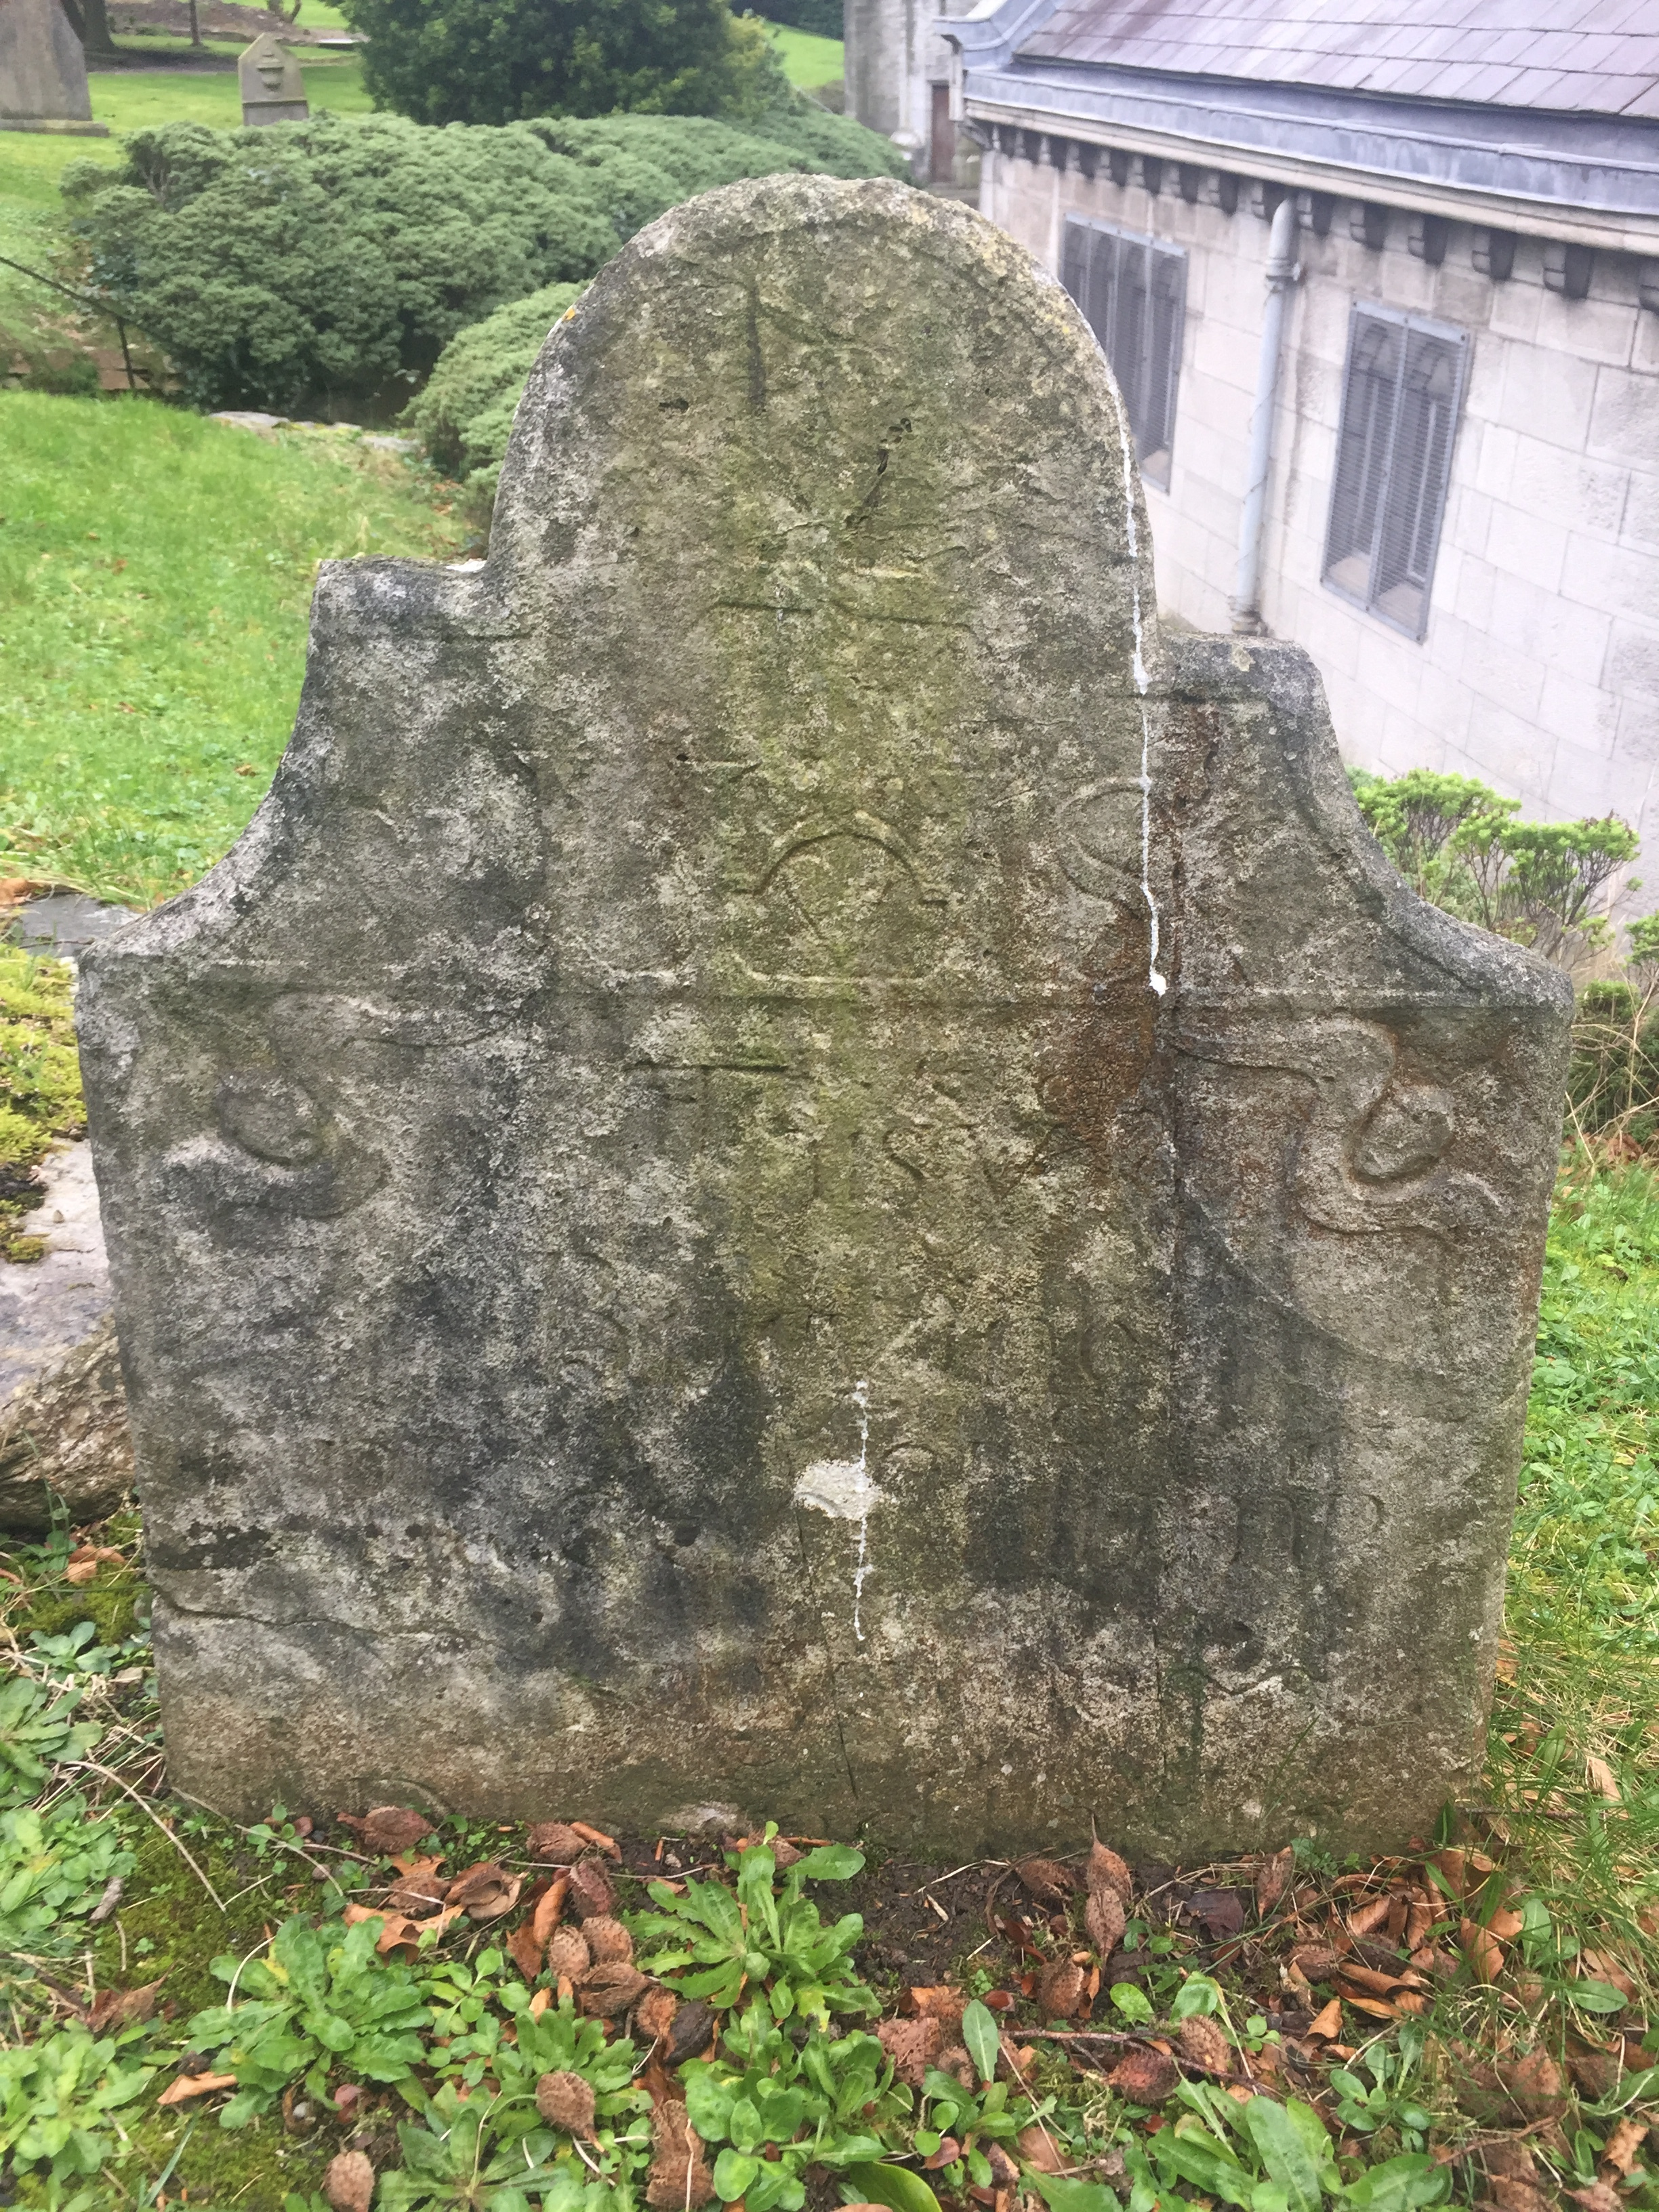 Some of the old tombstones.